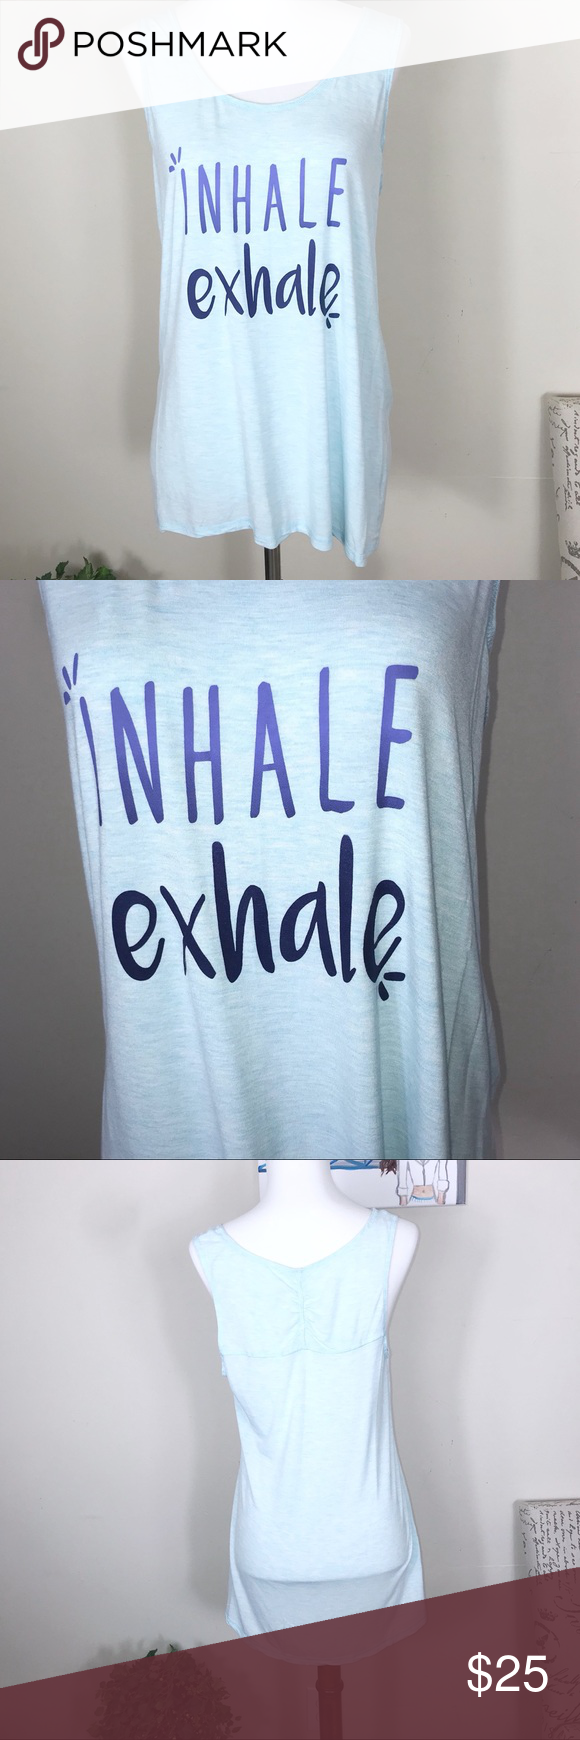 Gaiam Light Blue Inhale Exhale Tank Top Size M GAIAM light blue yoga tank top size medium. Says Inhale Exhale. Lightweight and good used condition. Please see pictures.   Measurements GAIAM Tops Tank Tops #inhaleexhale Gaiam Light Blue Inhale Exhale Tank Top Size M GAIAM light blue yoga tank top size medium. Says Inhale Exhale. Lightweight and good used condition. Please see pictures.   Measurements GAIAM Tops Tank Tops #inhaleexhale